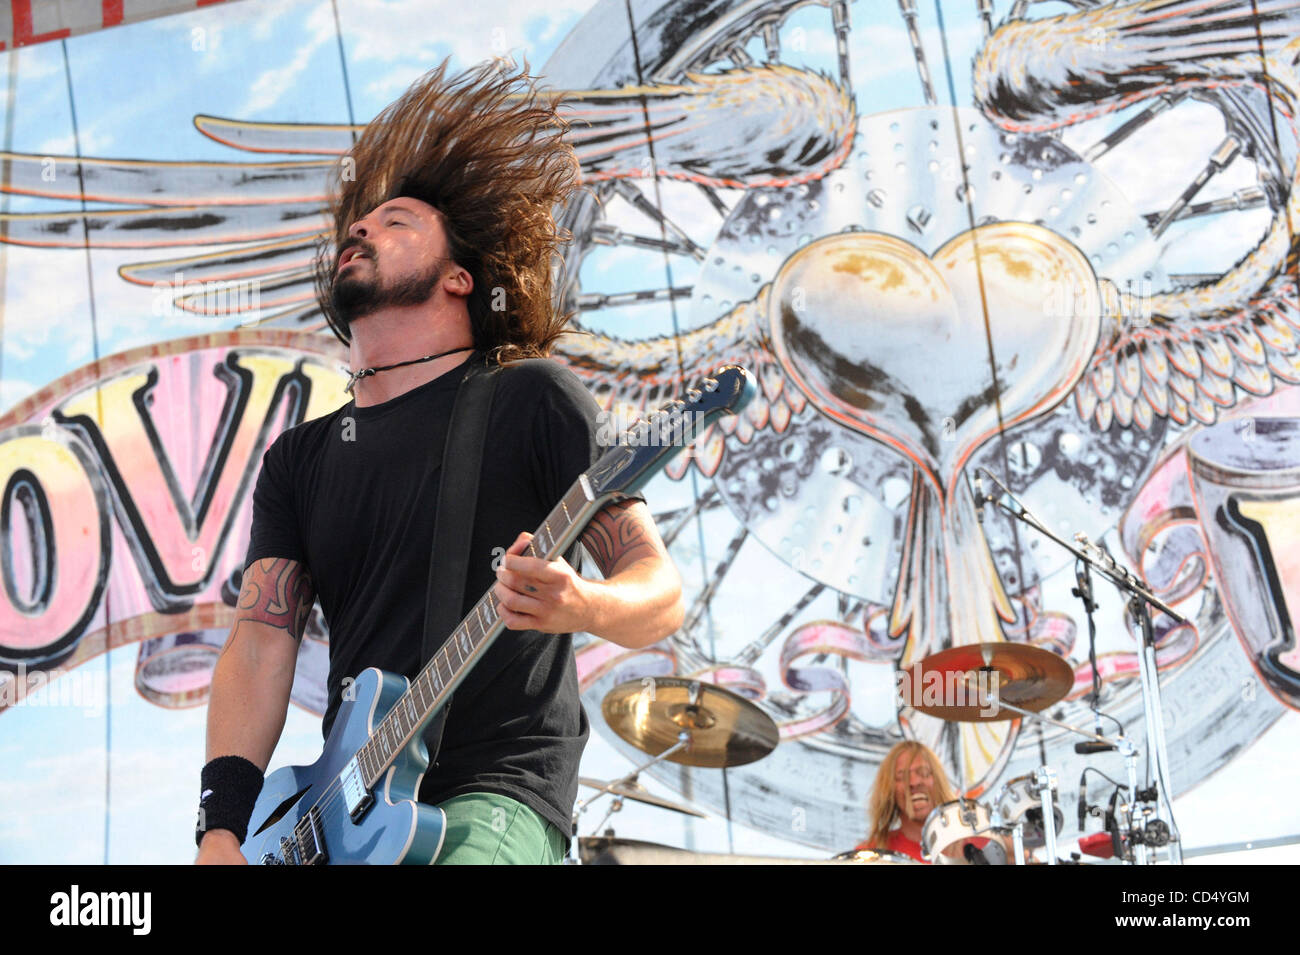 Oct 26.2008-Pomona, California, USA-Musician DAVID GROHL of the Foo Fighters at the 2008 Love Ride 25 held at the - Stock Image